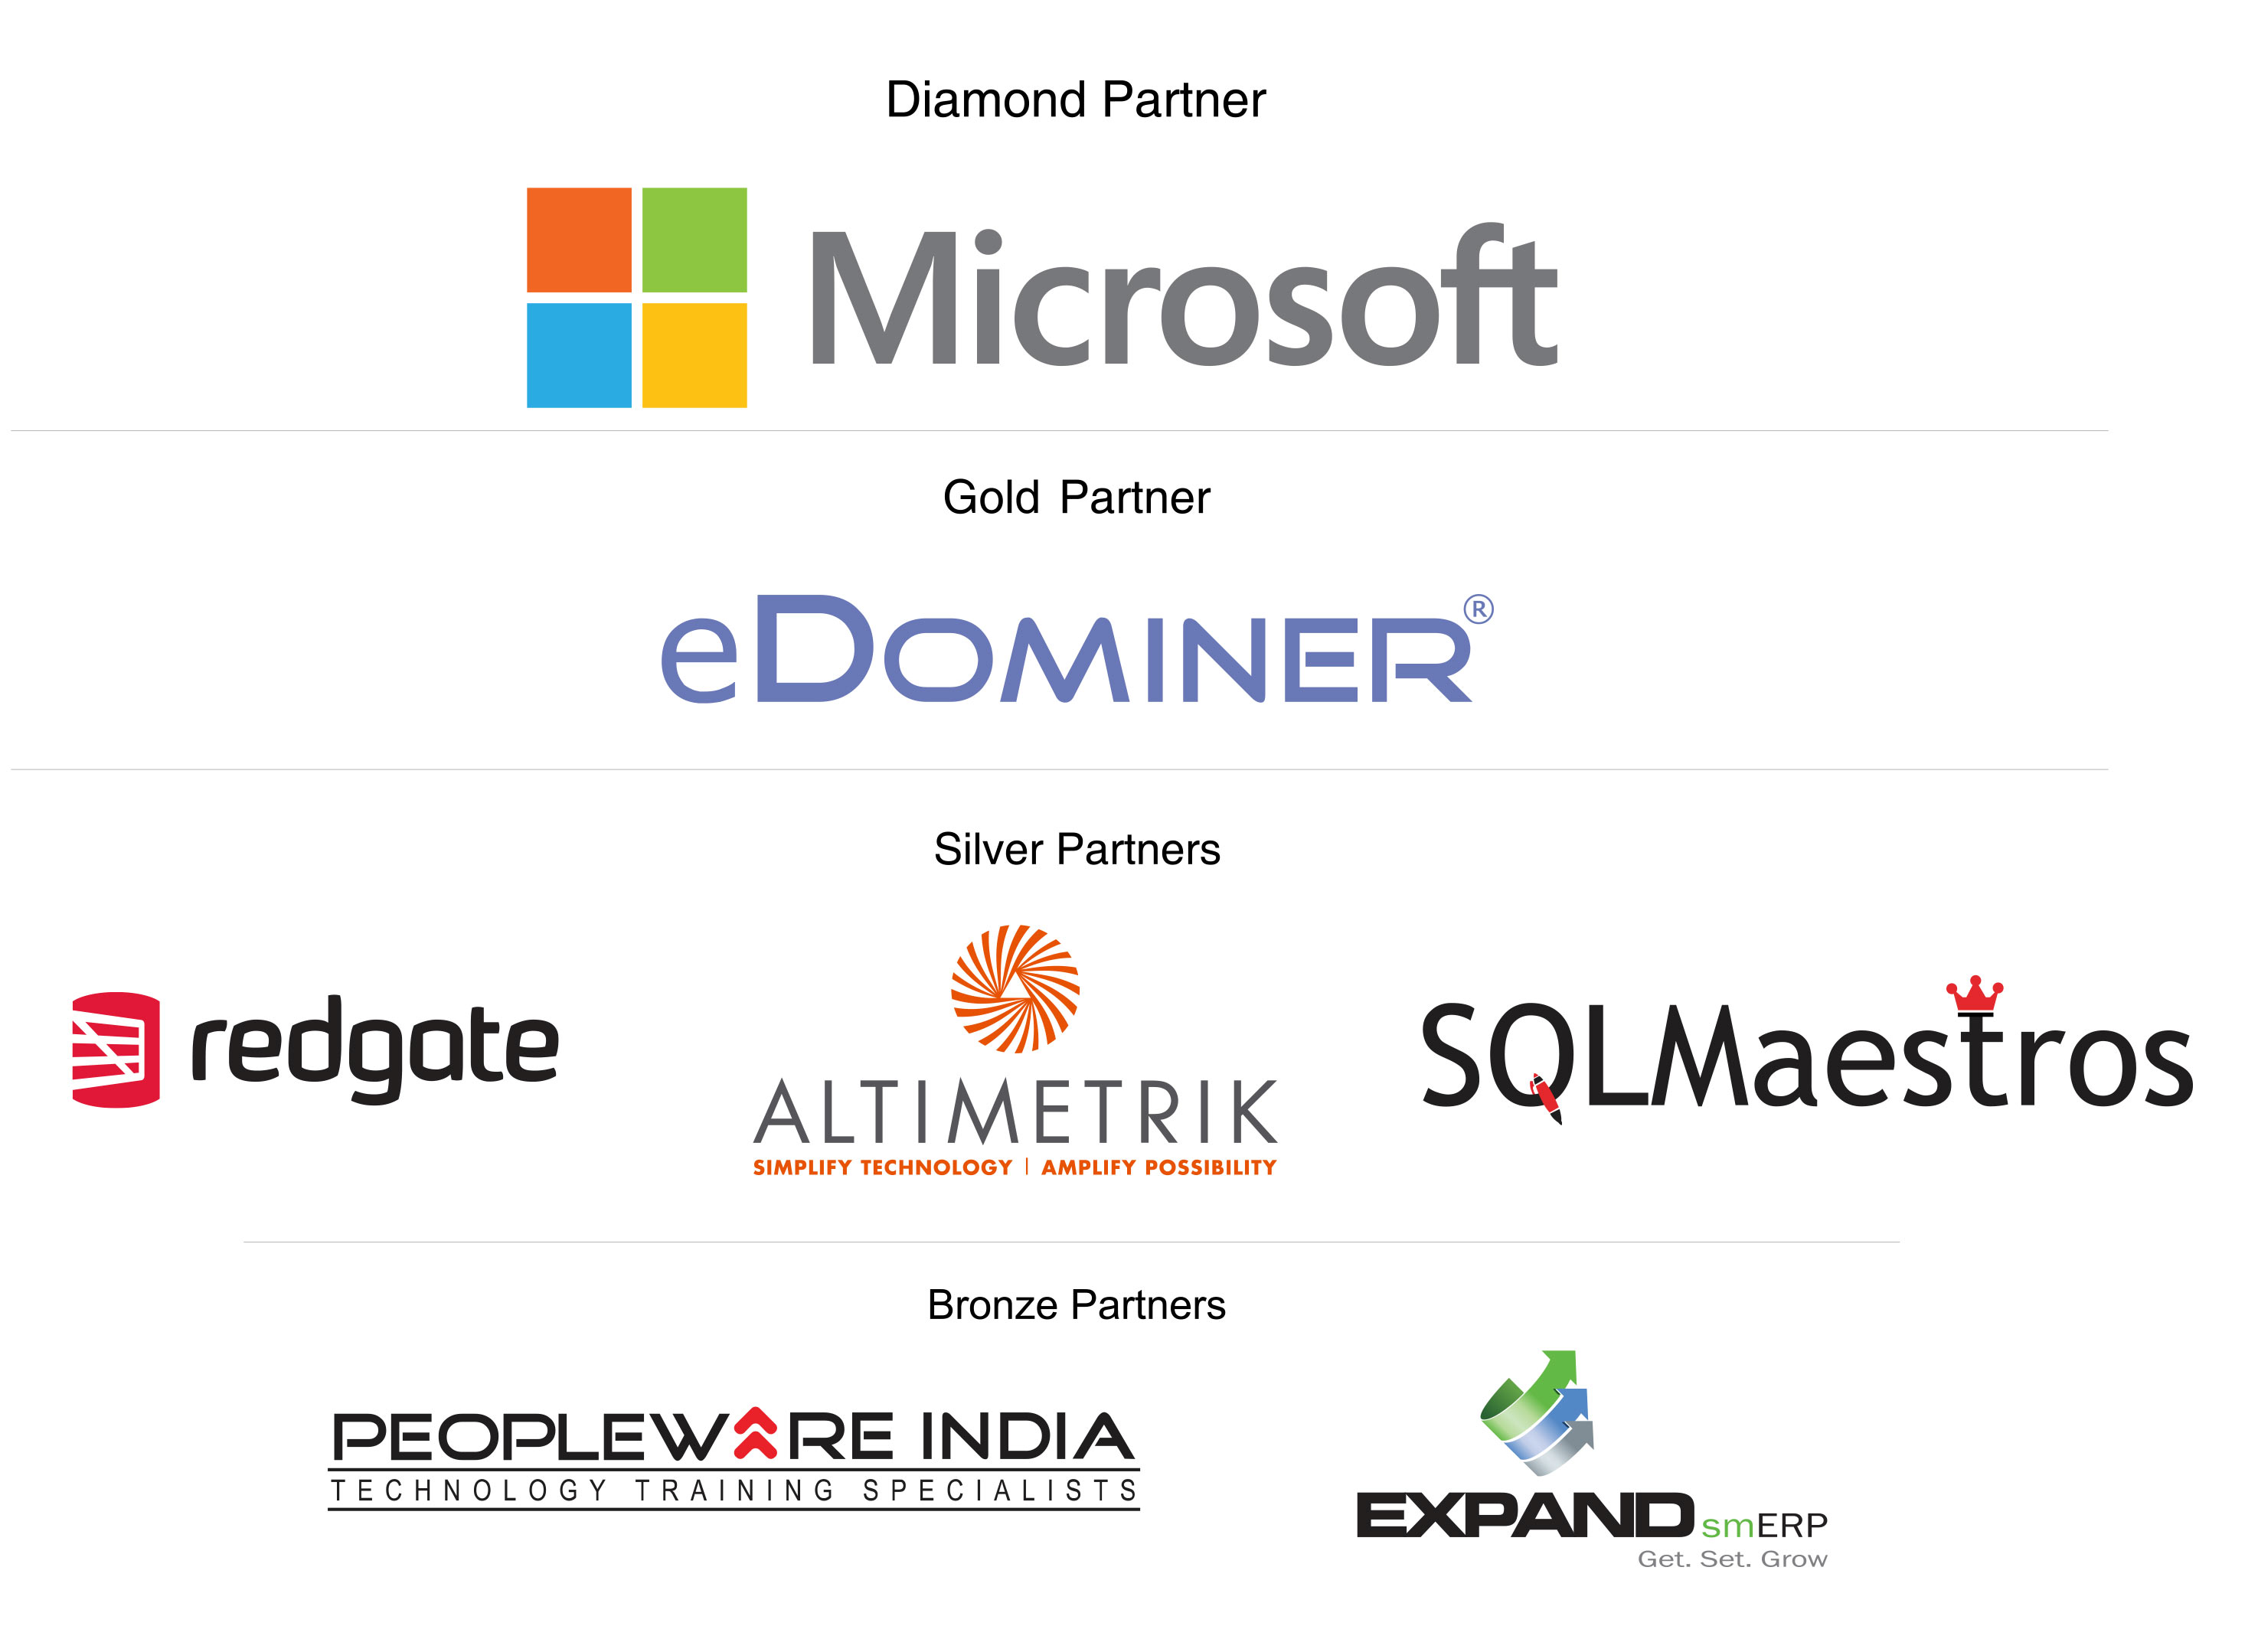 Data Platform Summit 2019 – Learning Event/Conference on